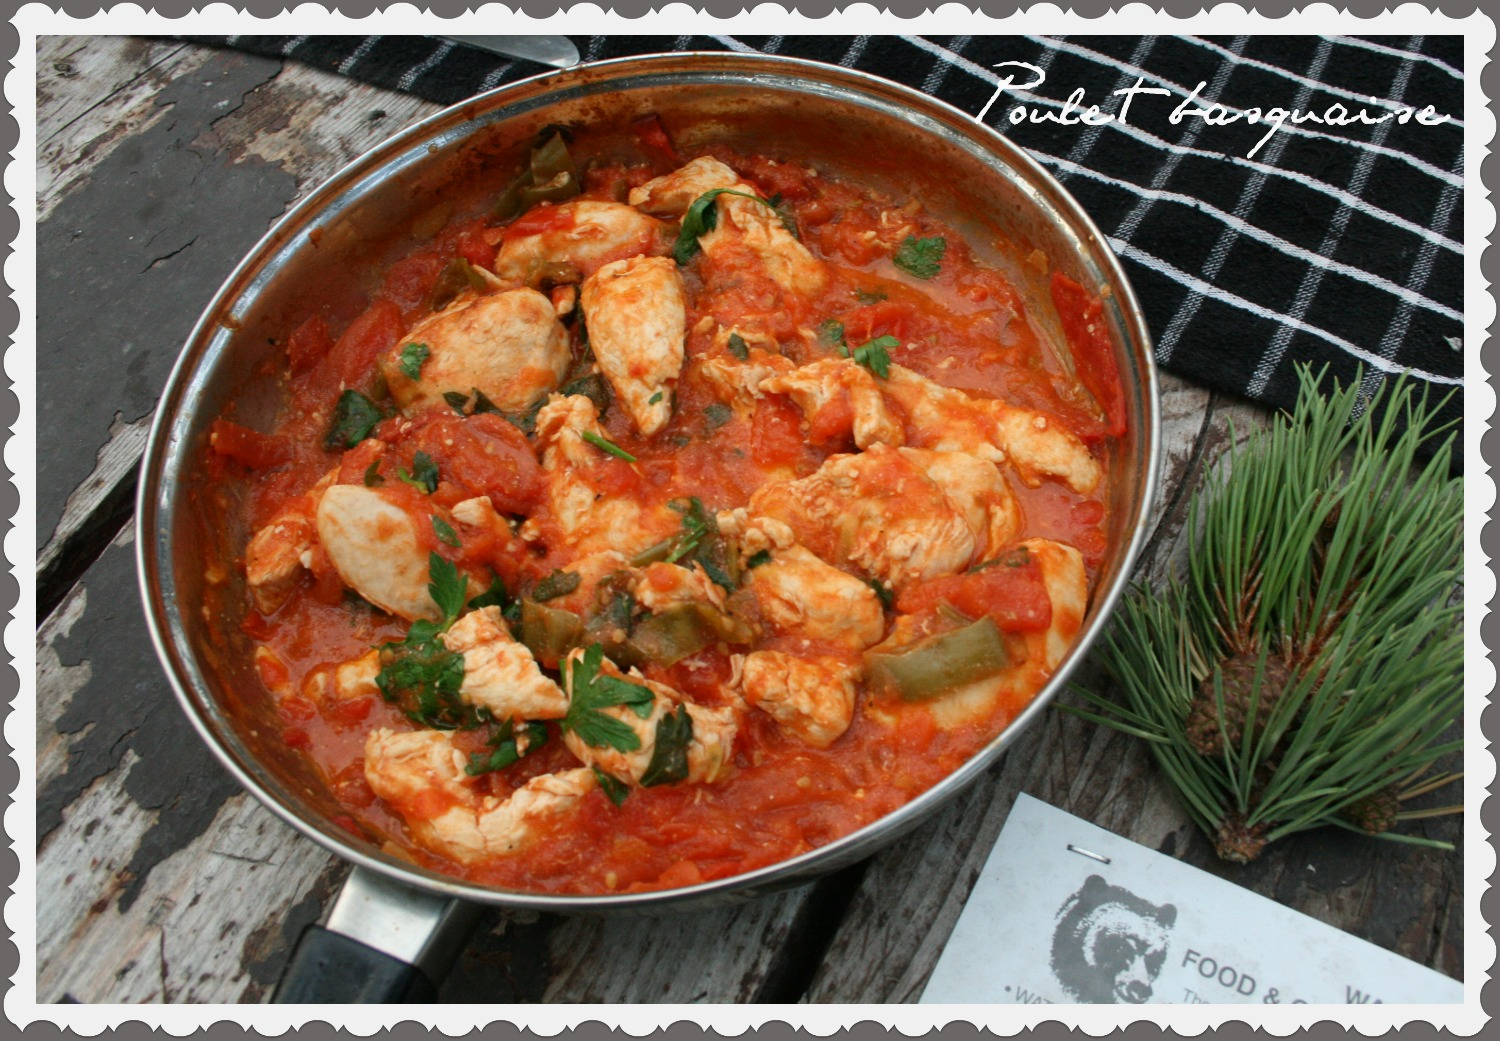 301 moved permanently - Cuisine poulet basquaise ...